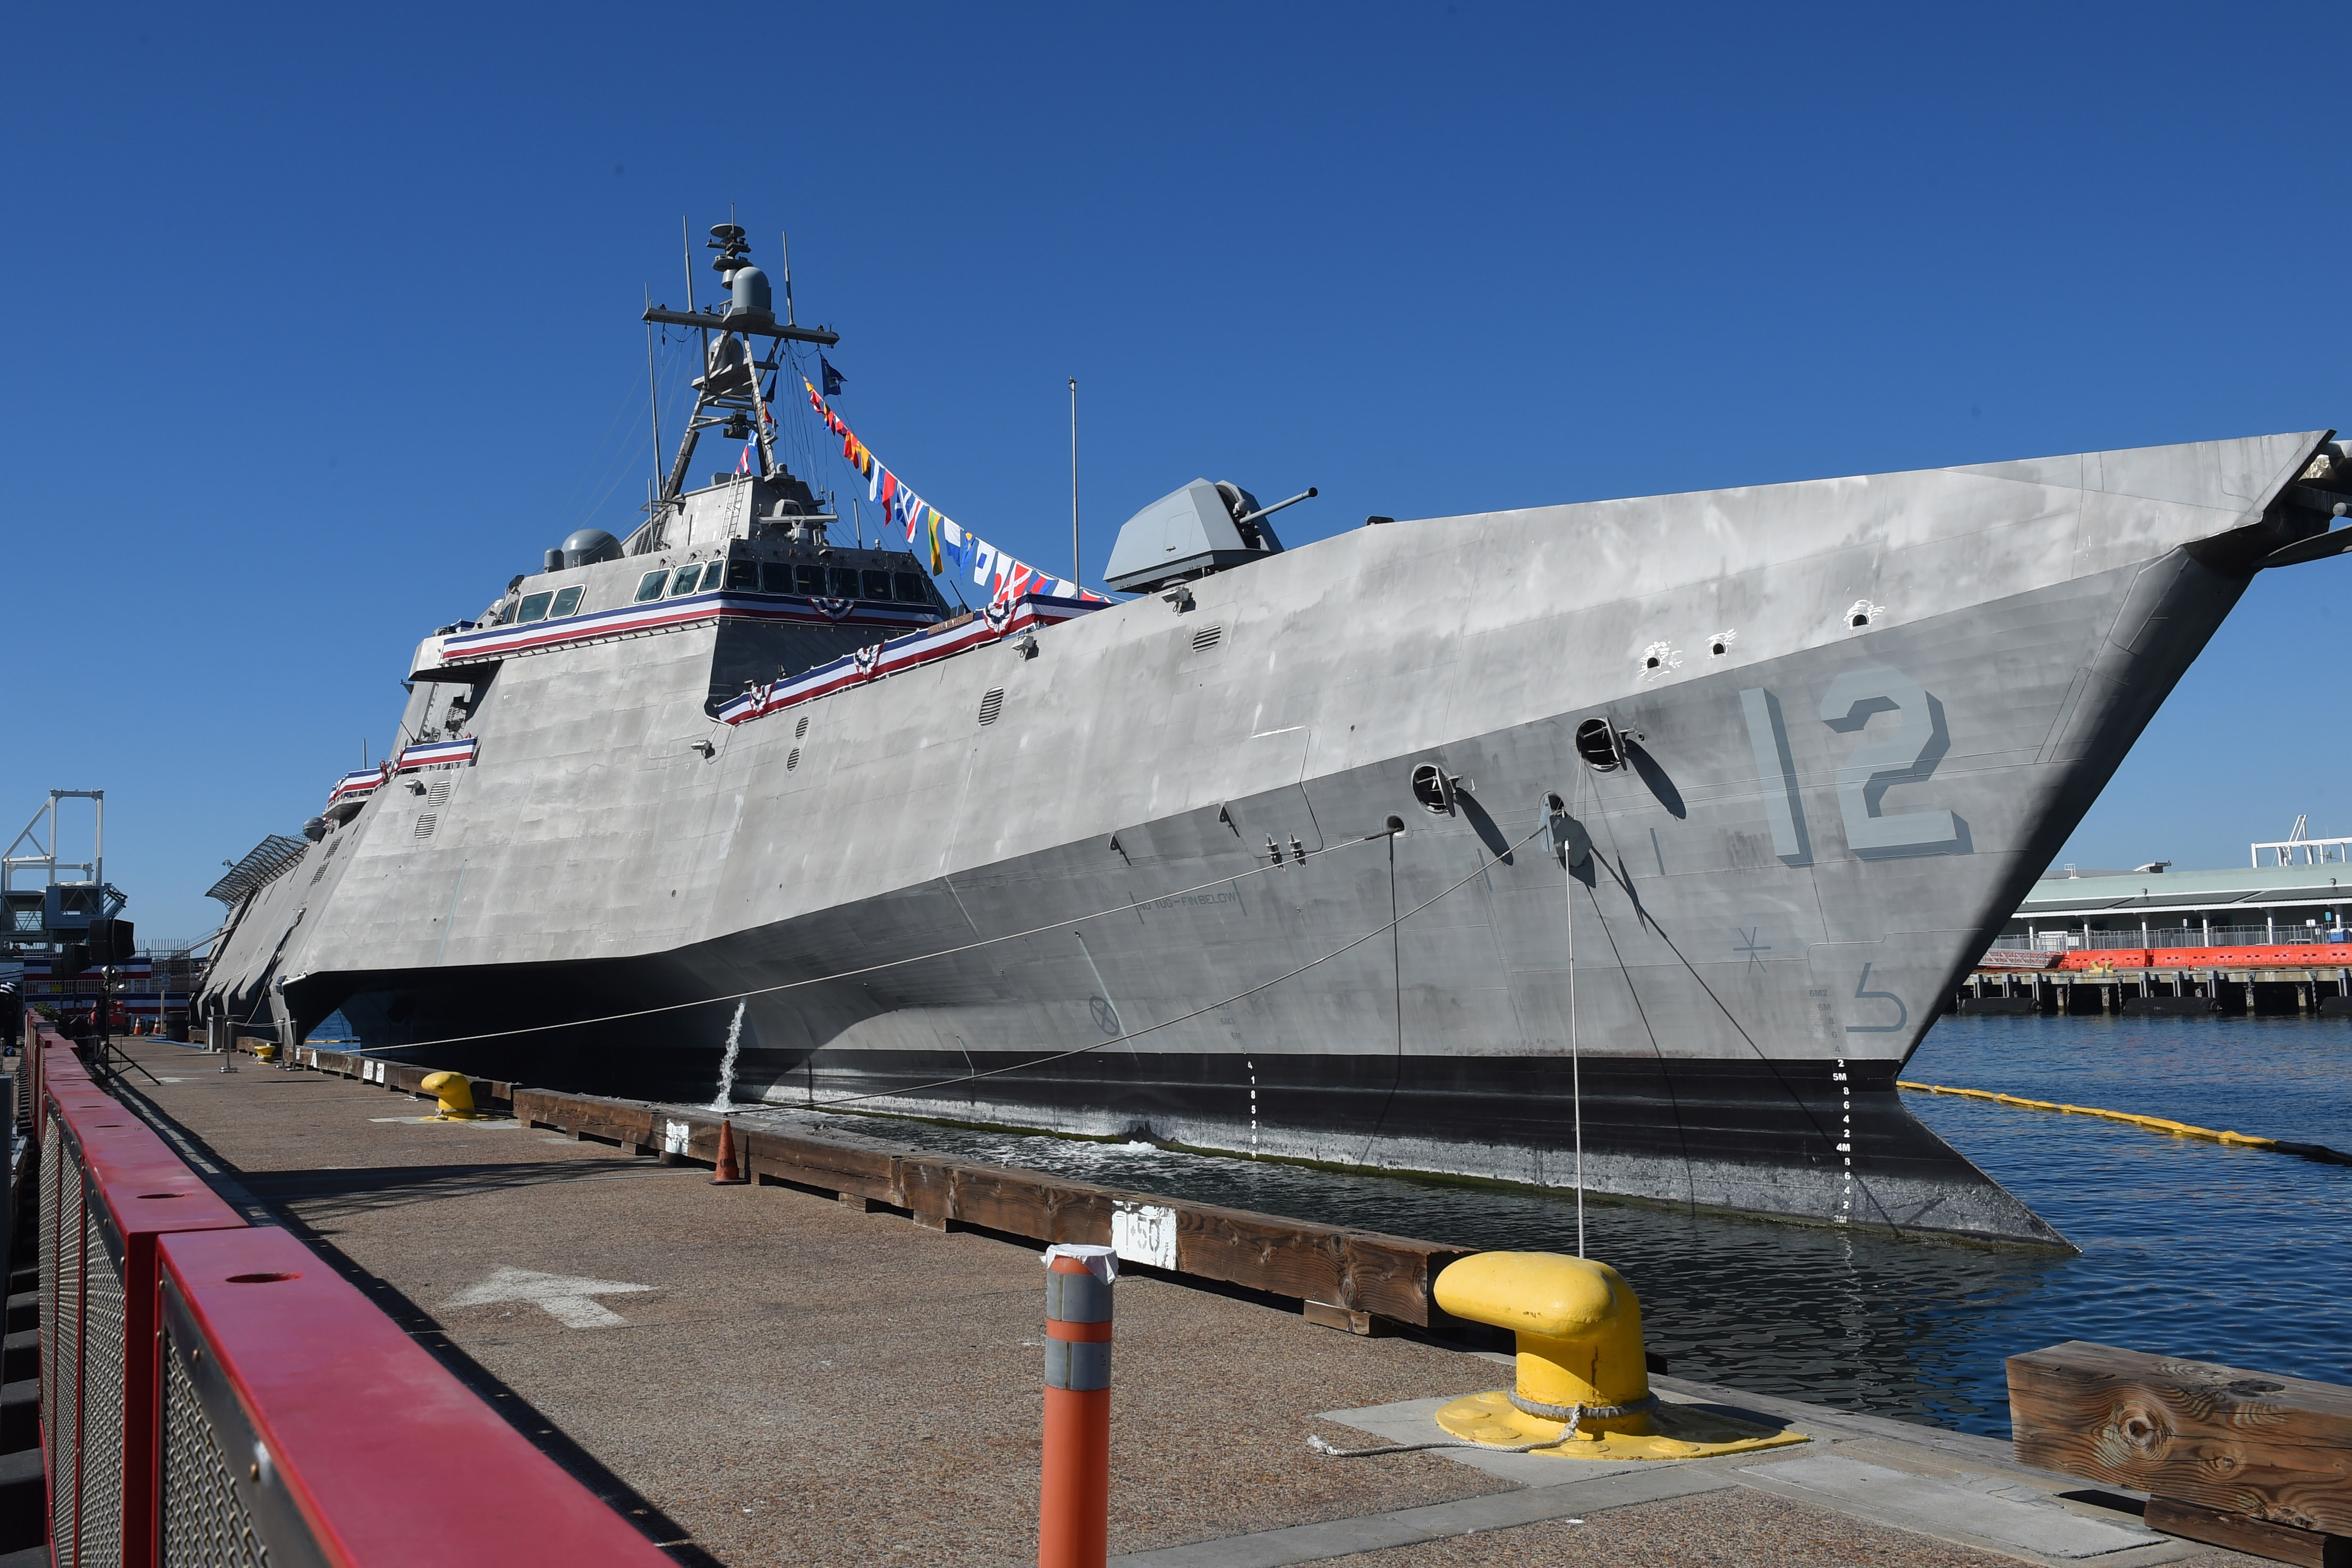 The littoral combat ship USS Omaha (LCS 12) is moored during its commissioning ceremony at Broadway Pier in San Diego, Calif